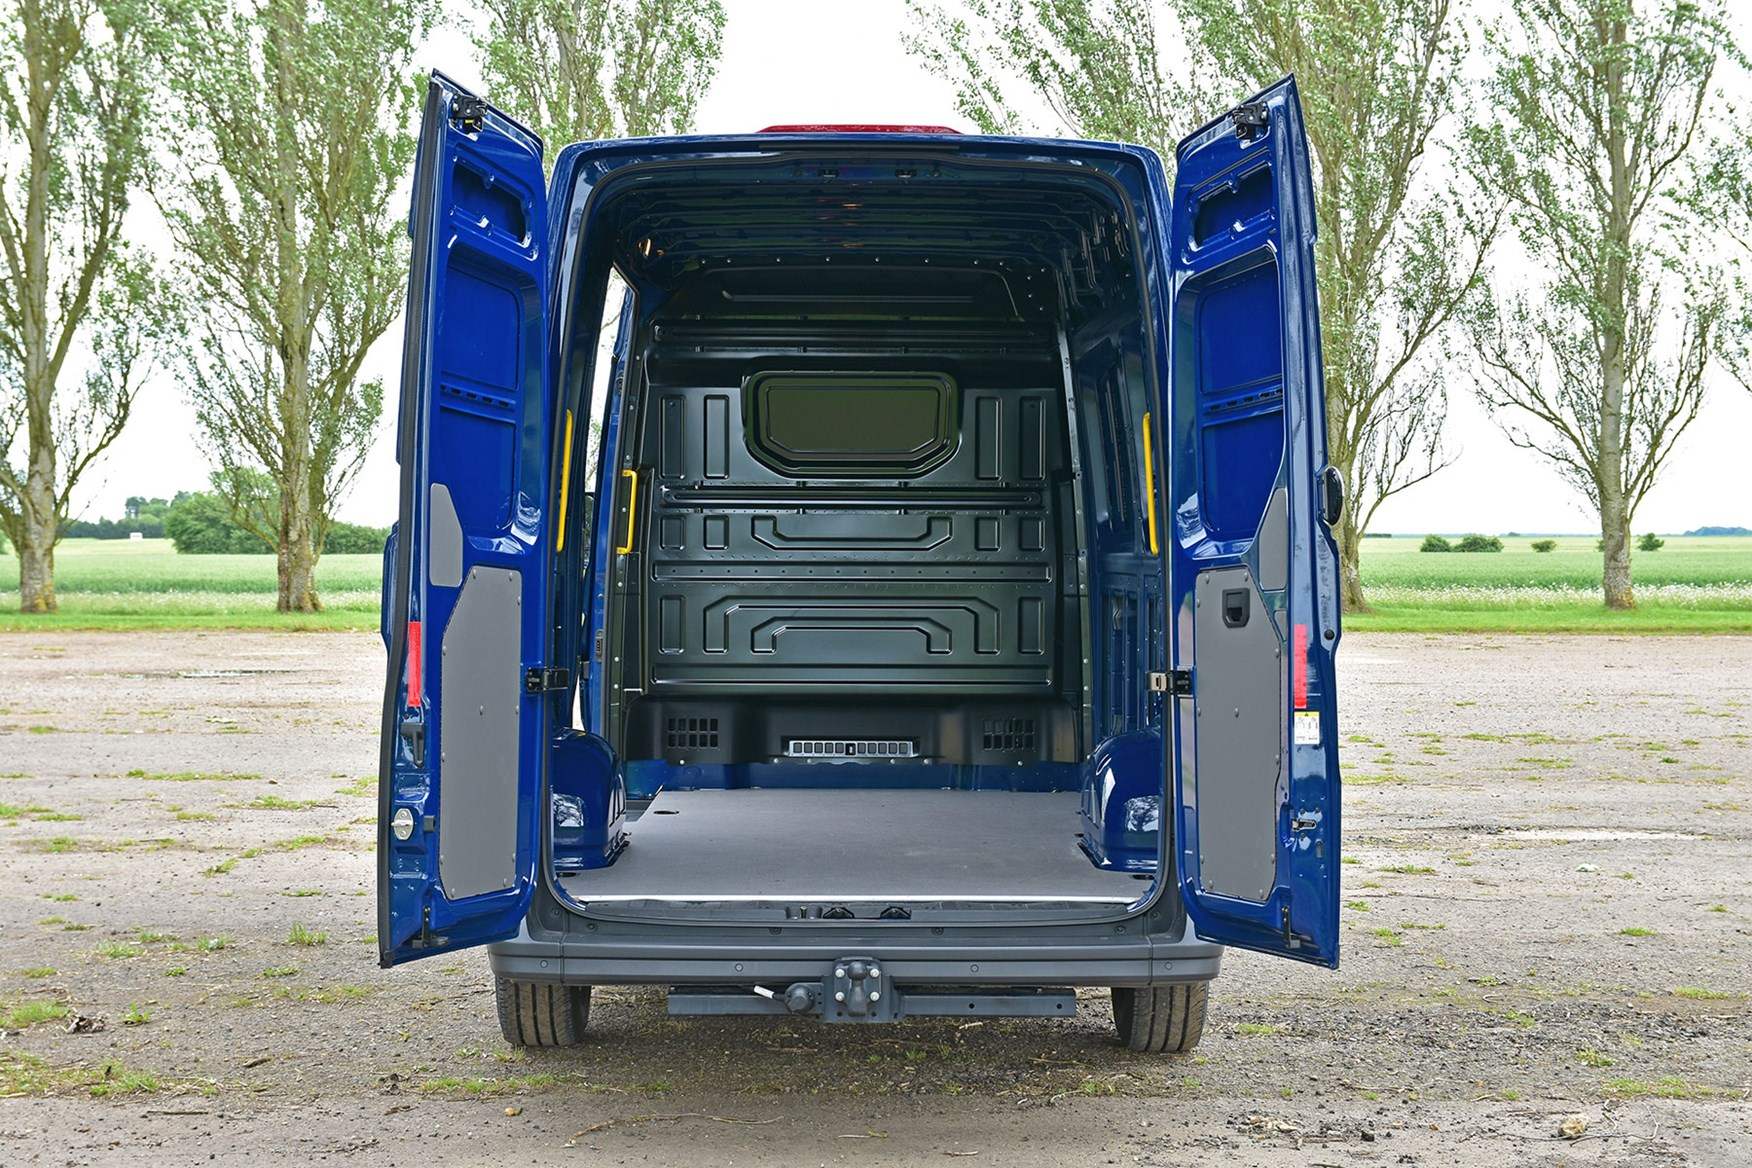 VW Crafter FWD review - load area